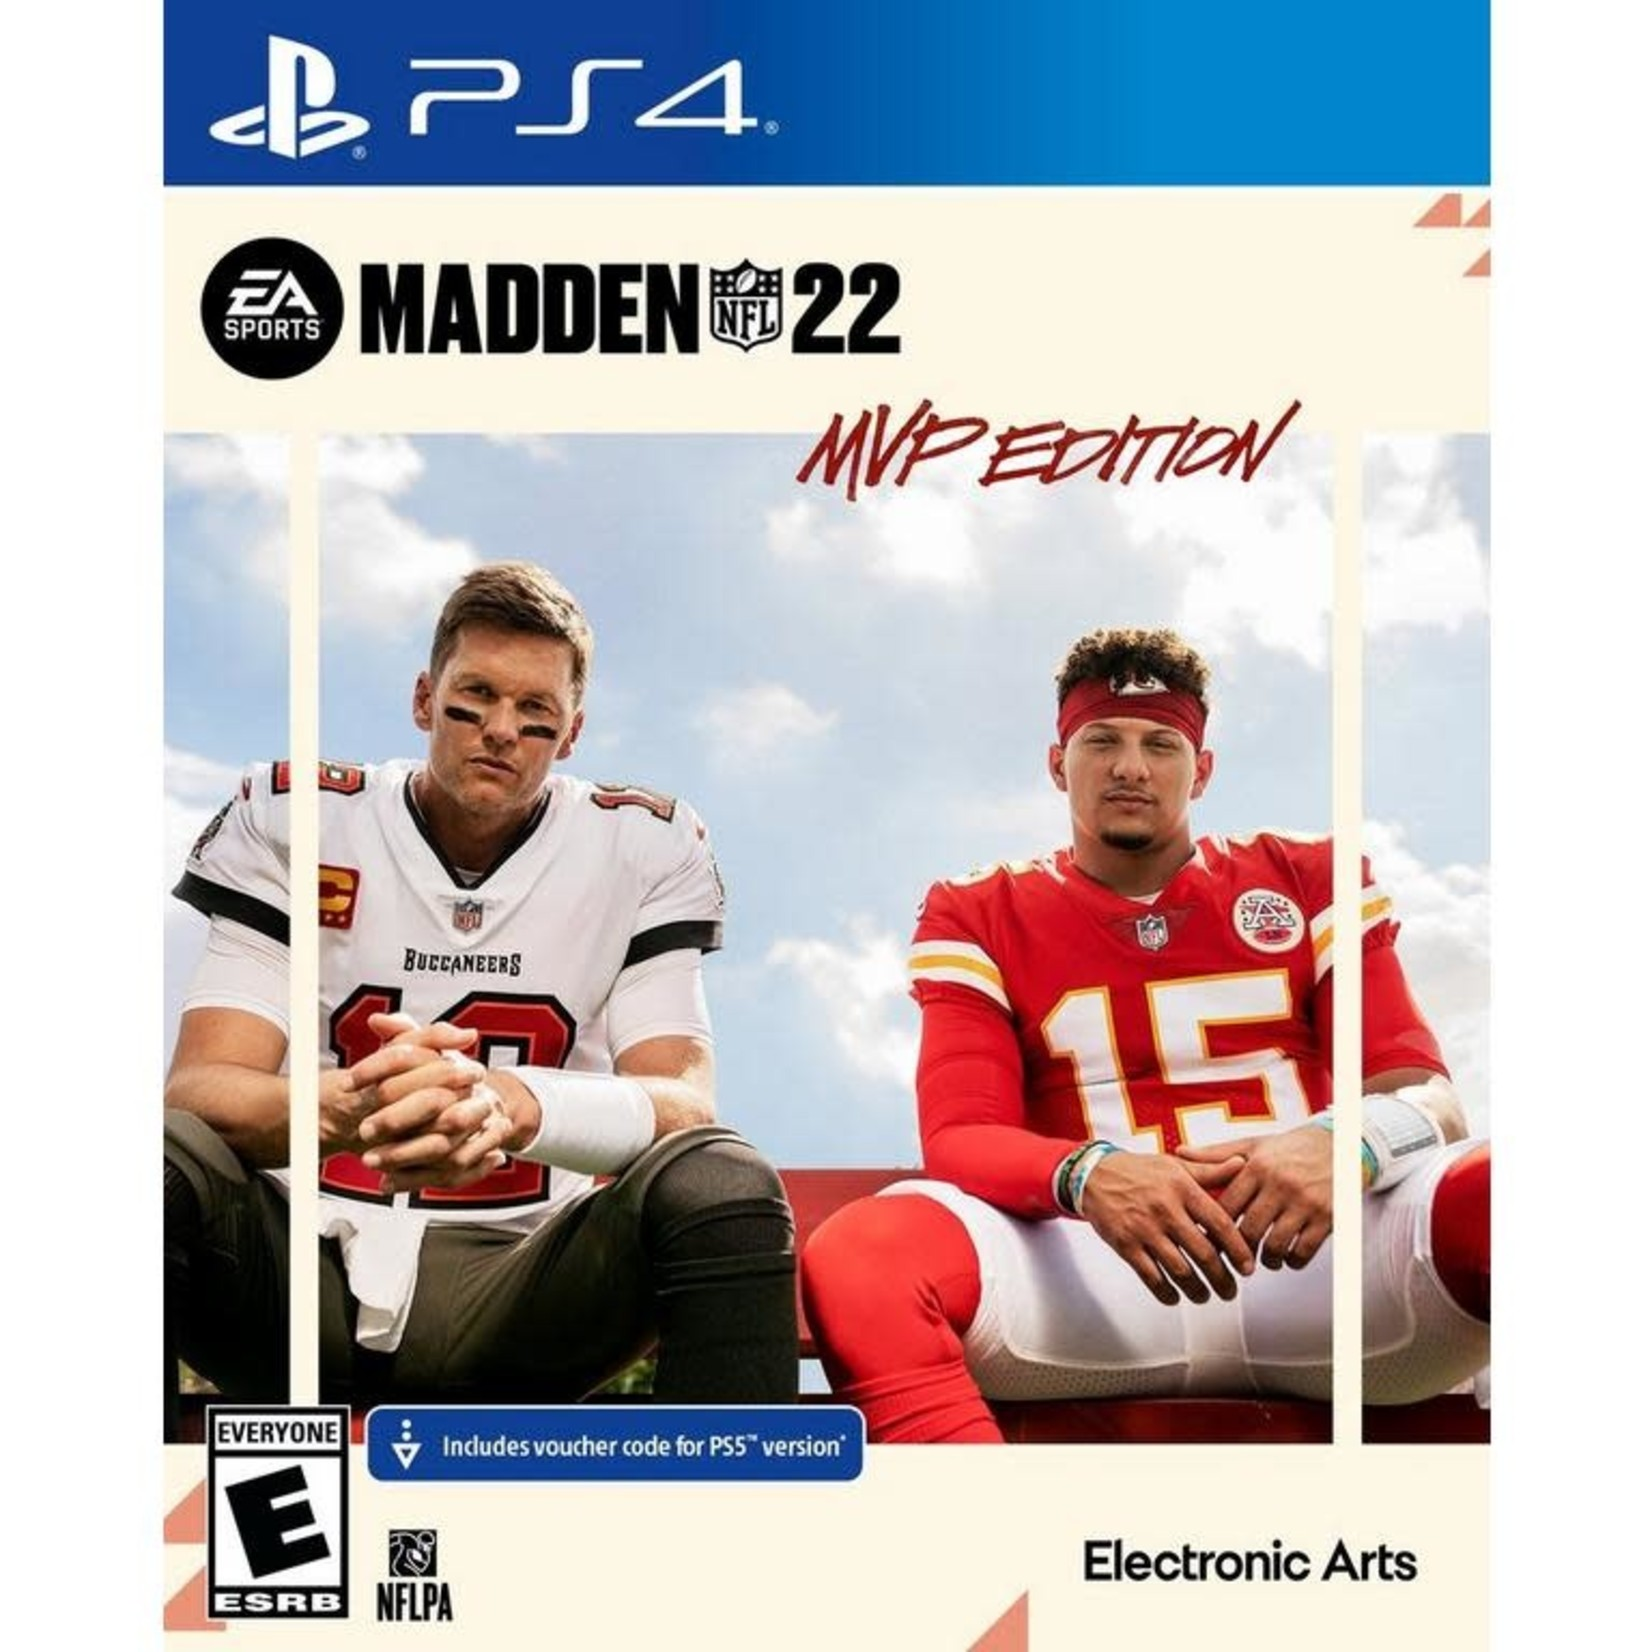 PS4-Madden NFL 22 MVP Edition